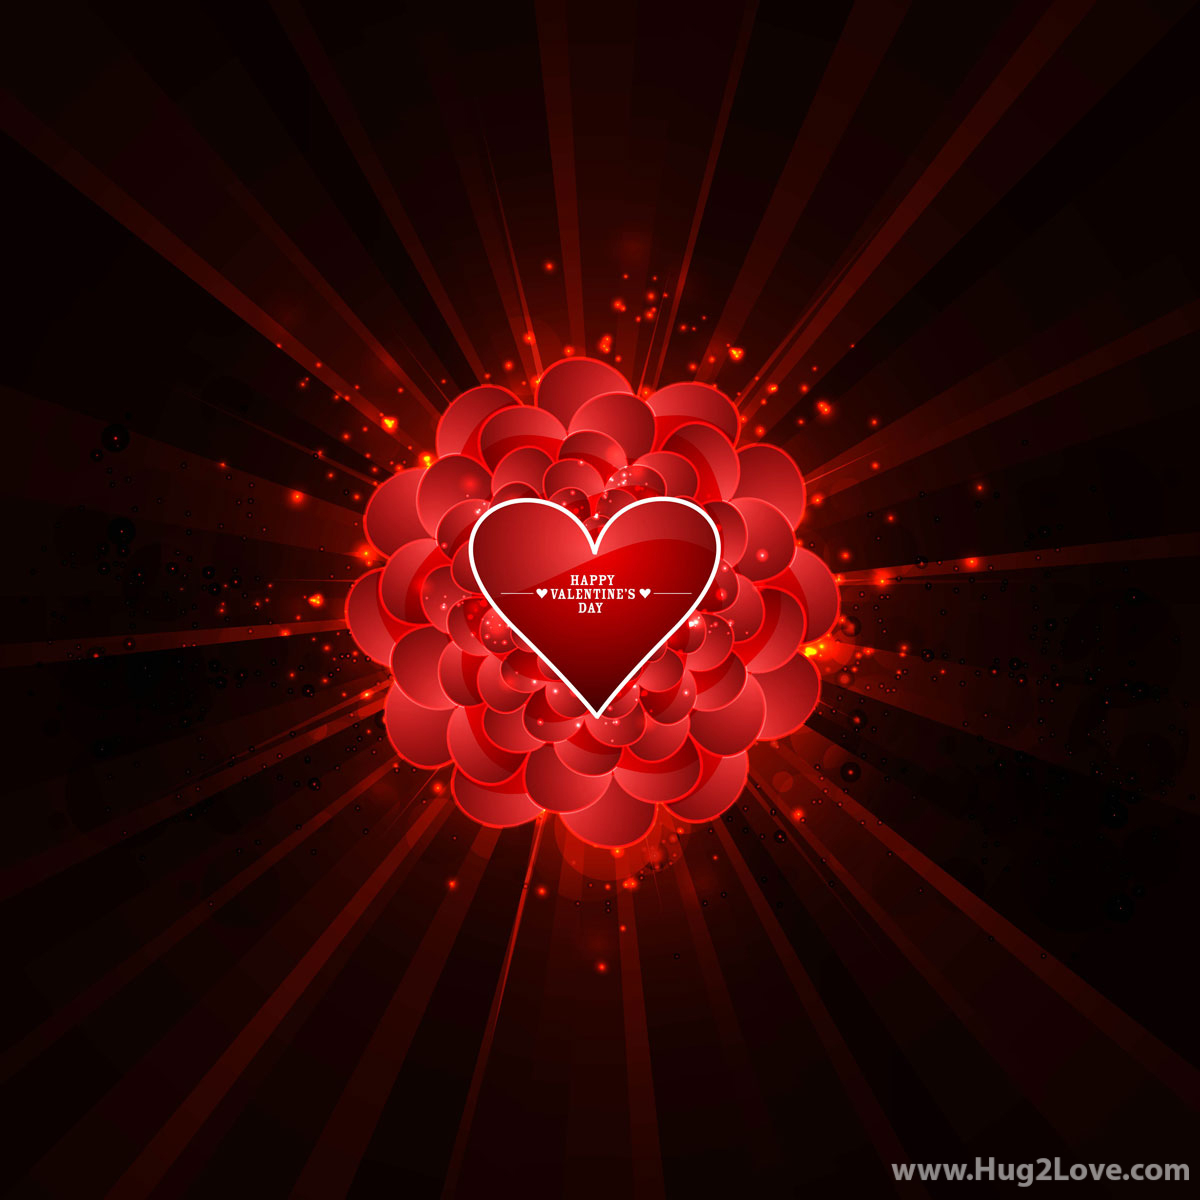 valentines day images 2016